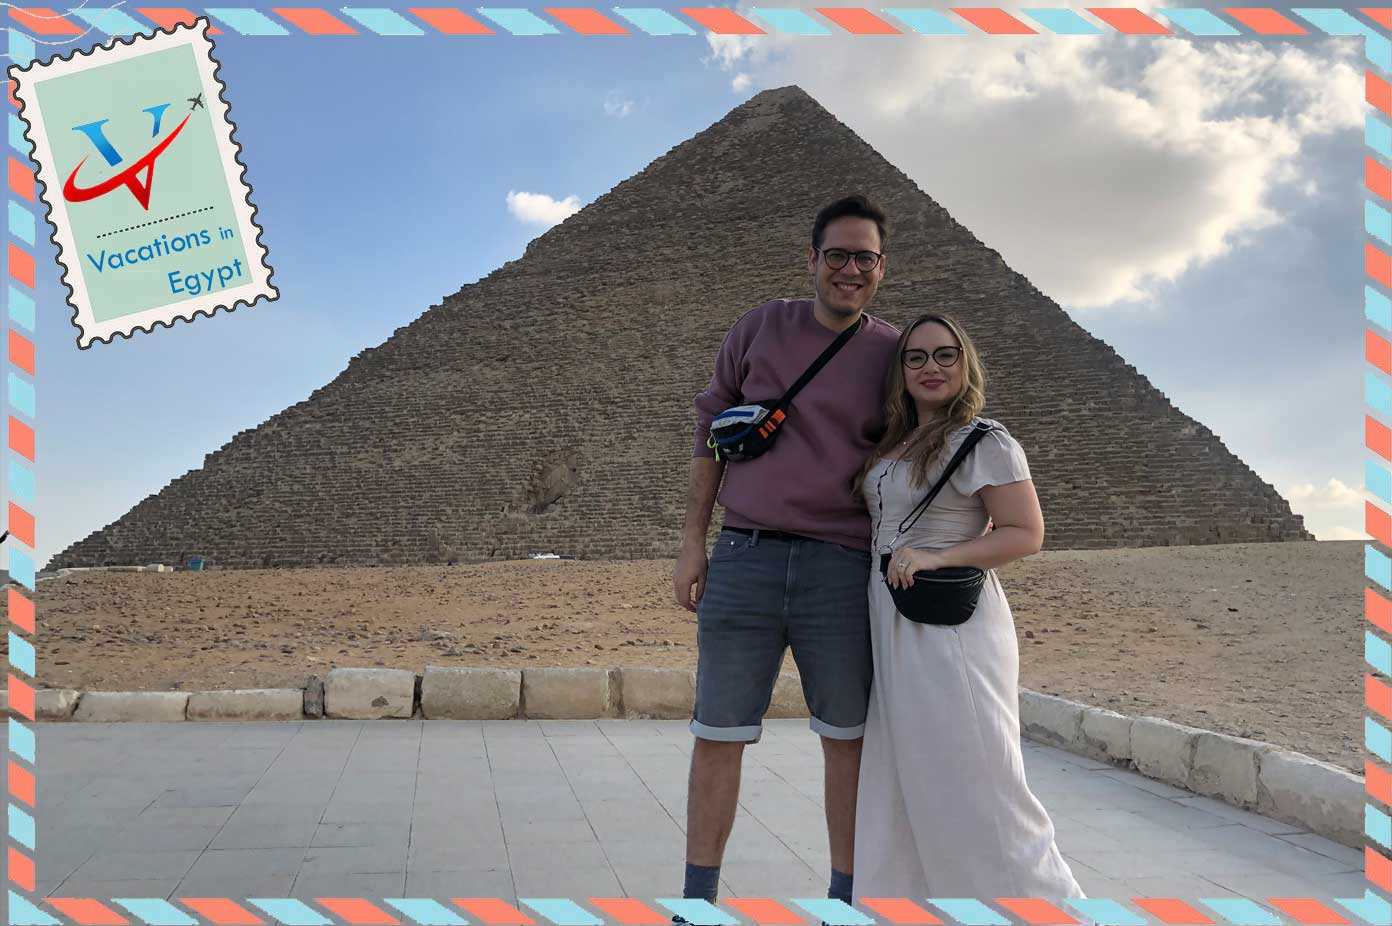 Private tours of Egypt